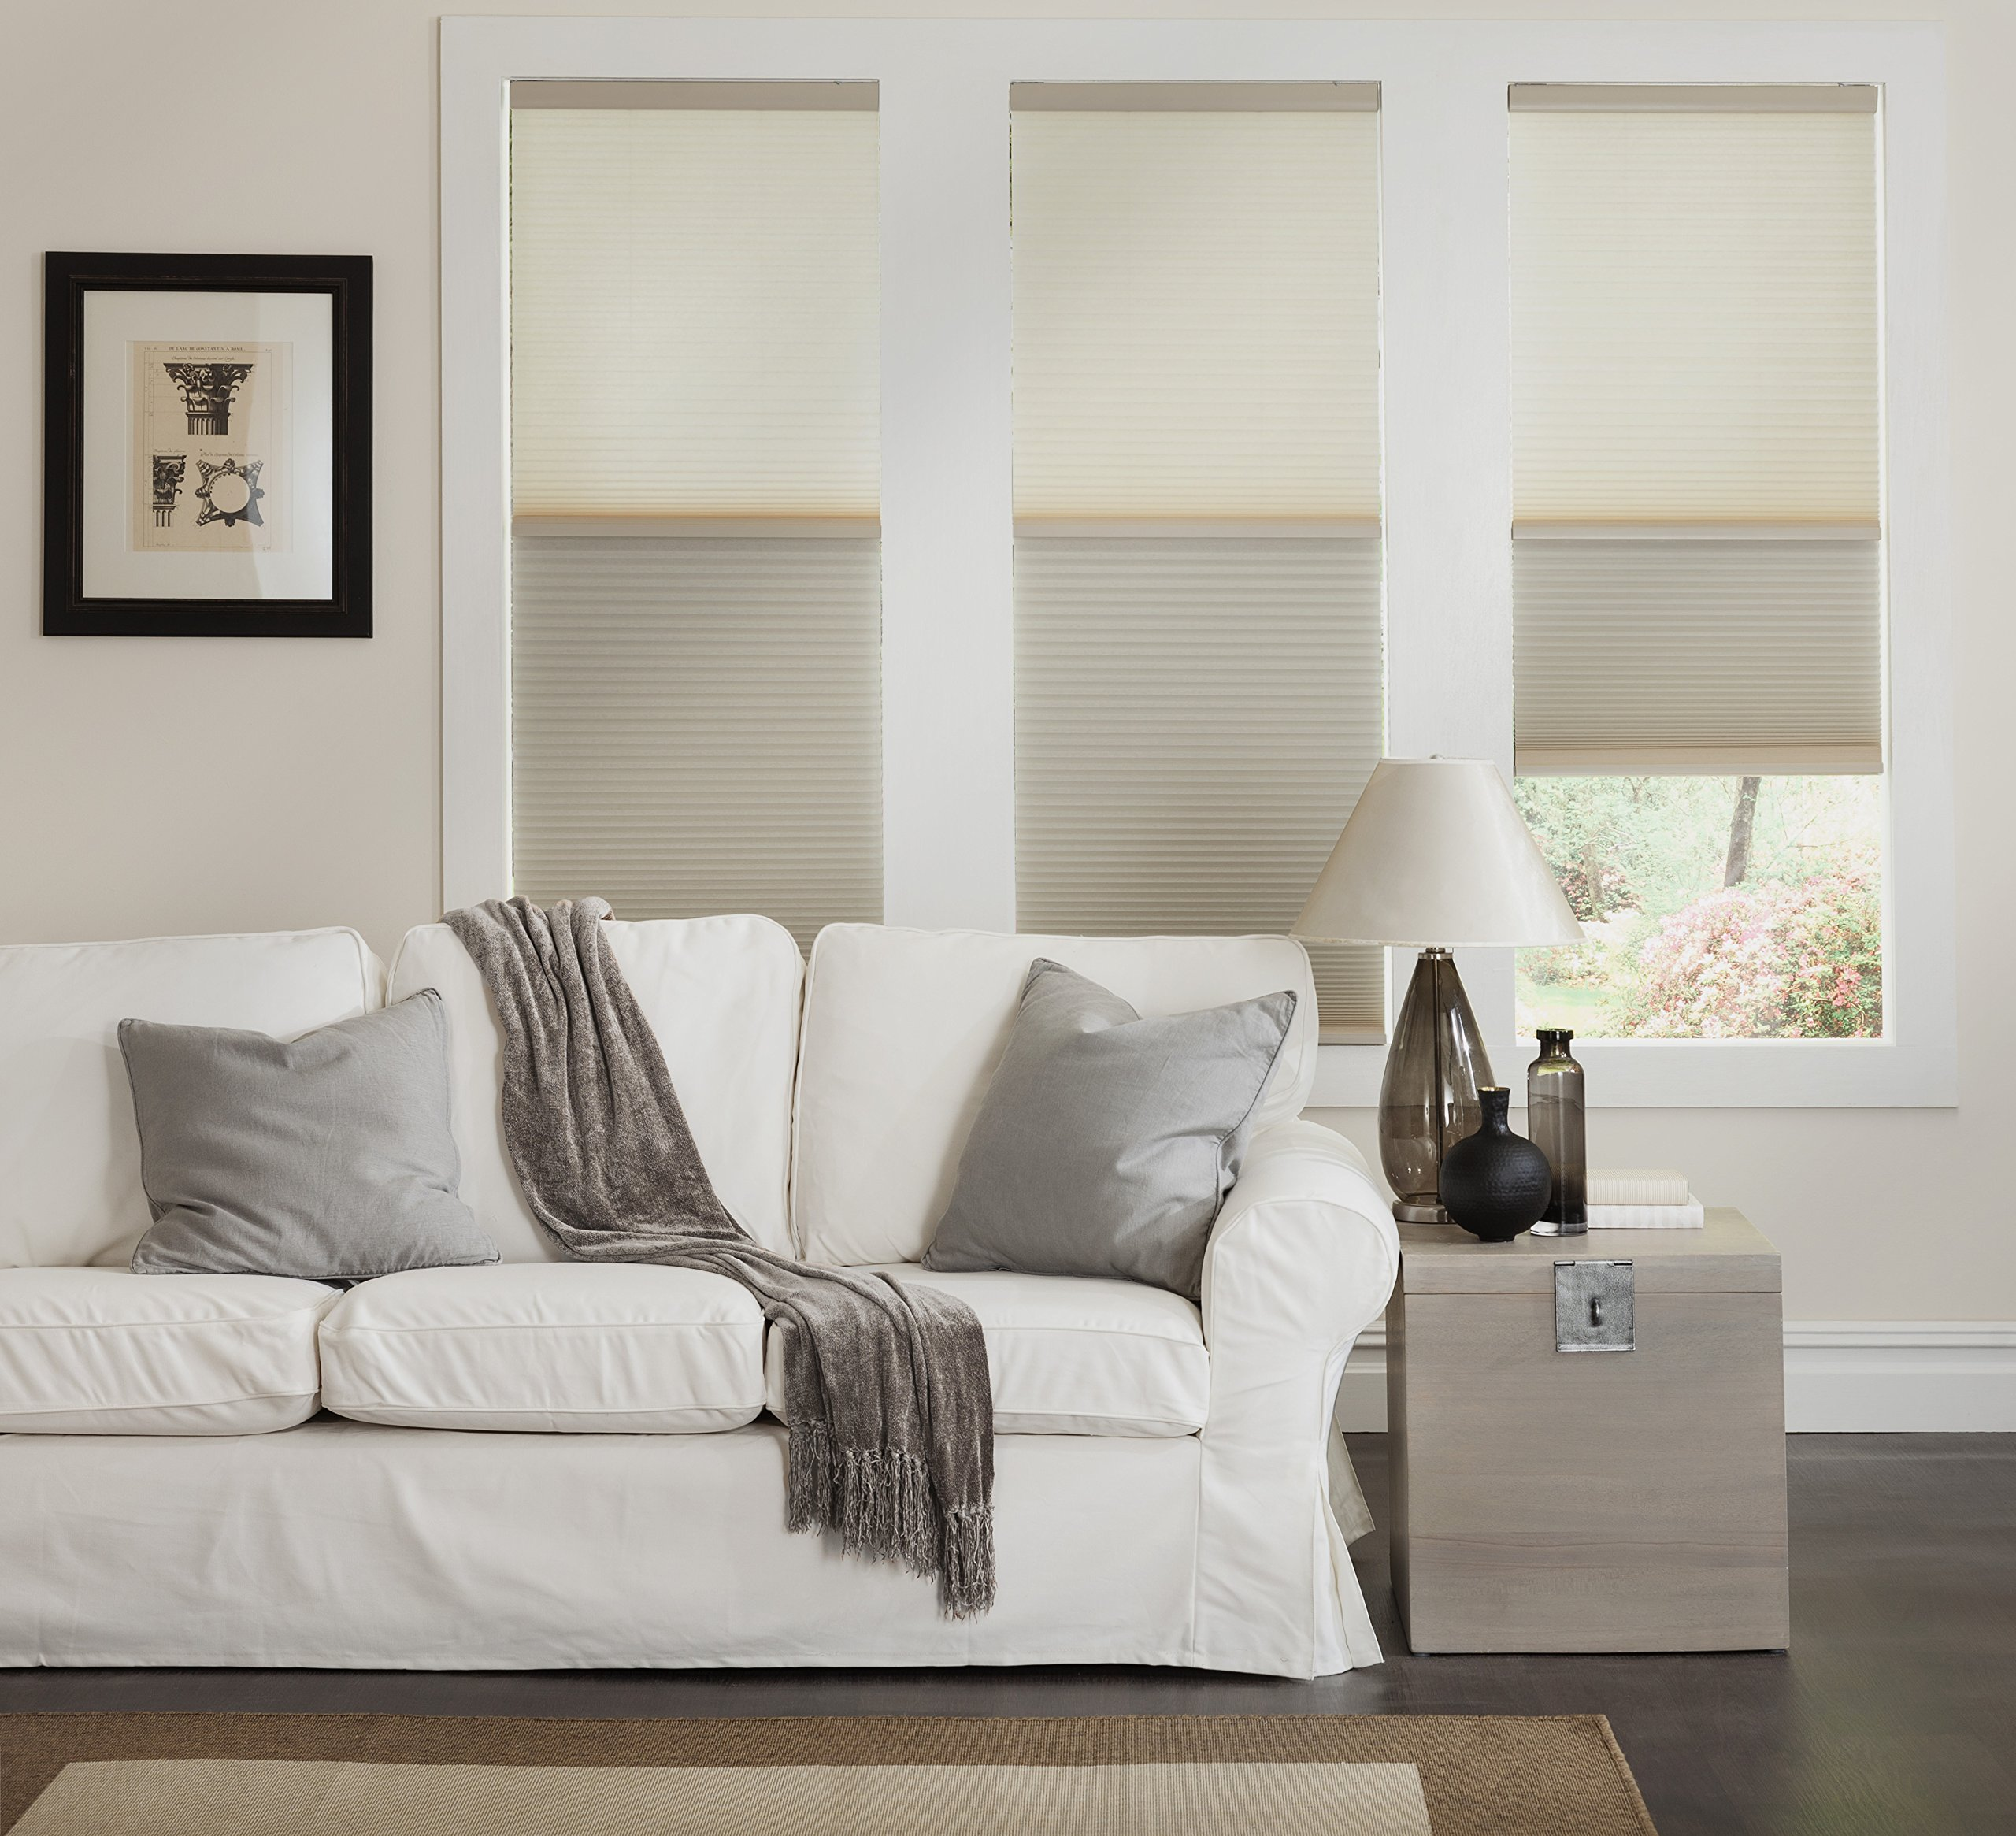 Cordless Day/Night Cellular Shade, 2 shades in 1-Blackout and Light Filtering in one shade. 51W x 37H, Ivory Beige